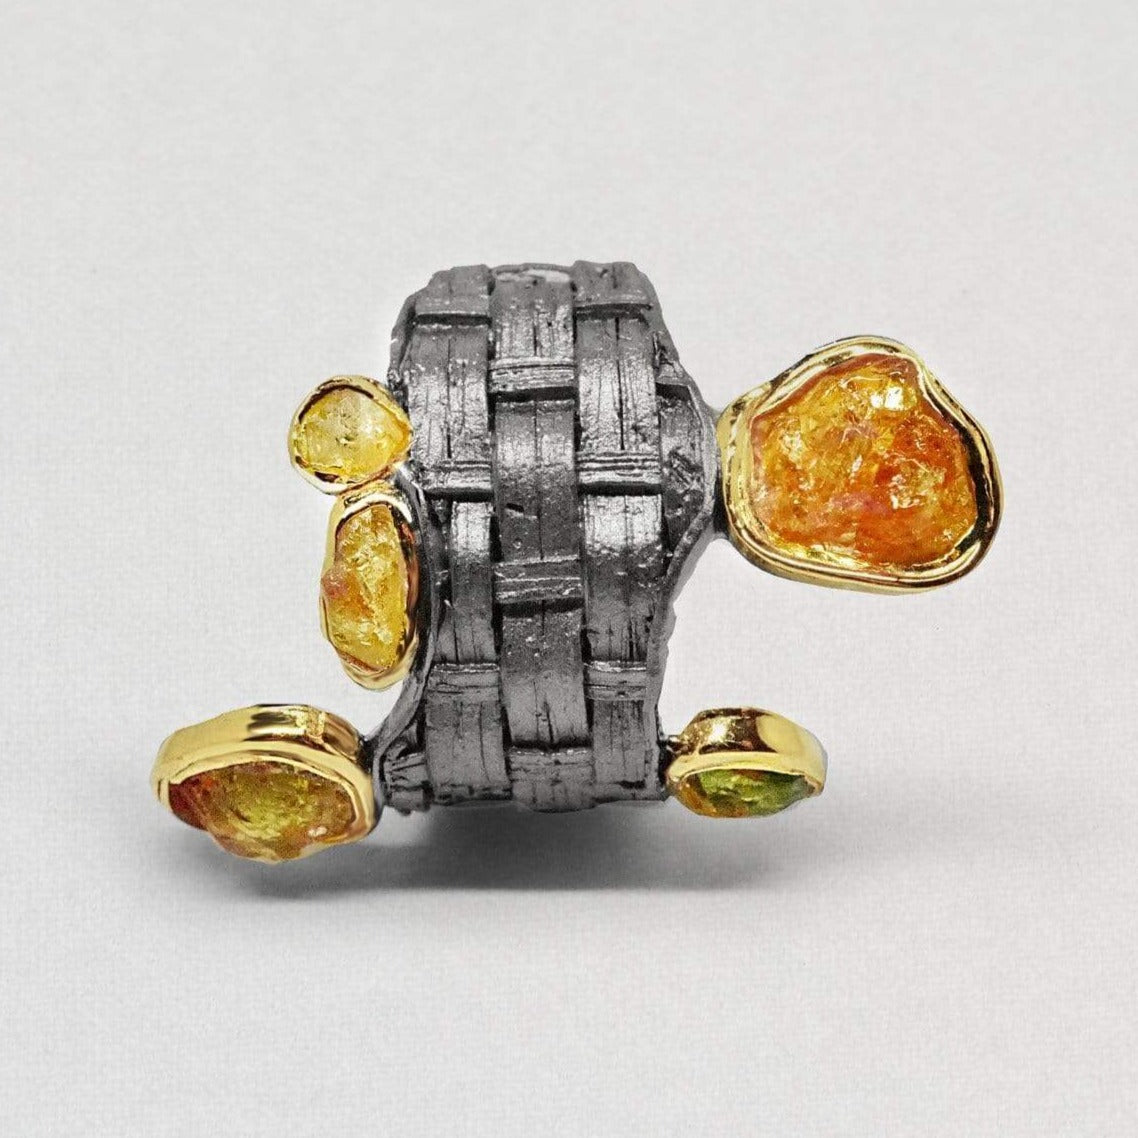 Cristalli Ring, Chrysoberyl, Gold, gray, Handmade, Rhodium, spo-disabled, StoneColor:Orange, Style:Everyday, Type:Jokers Ring